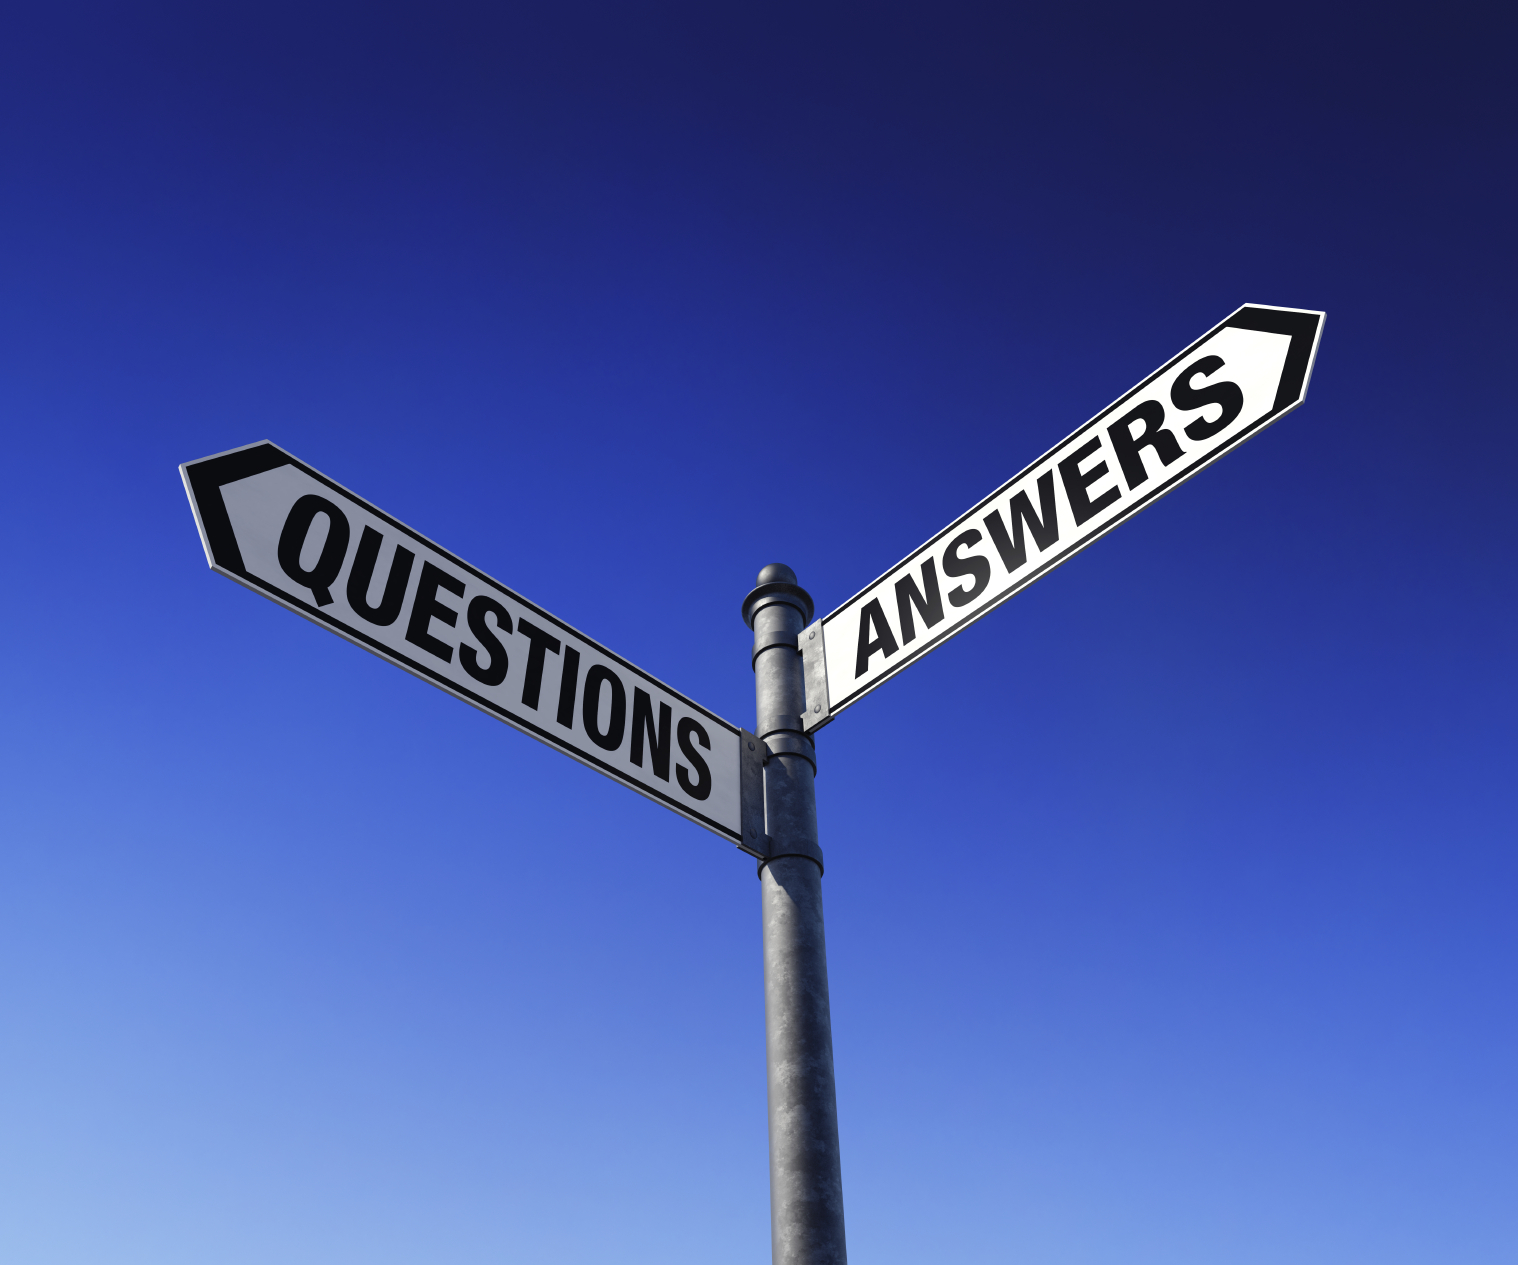 questions-and-answers.sflb